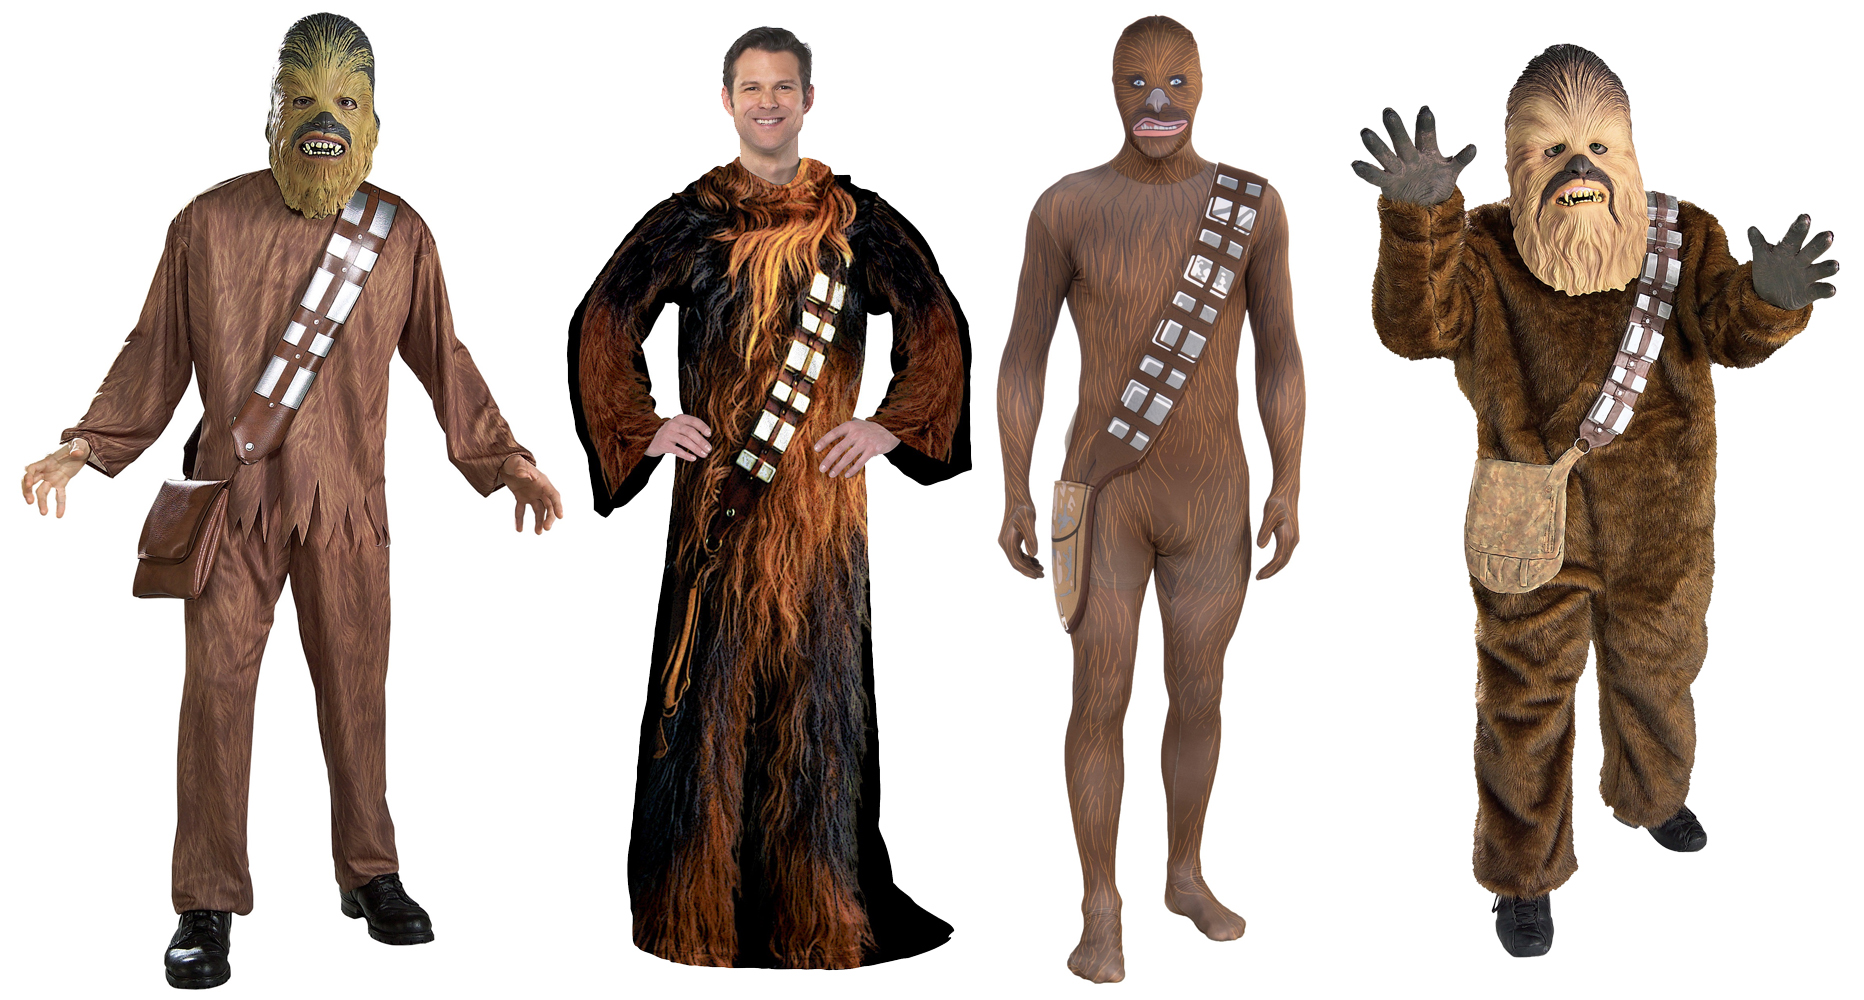 I Viewed 2,948 Men's Halloween Costumes, Here Are The Best (Worst)